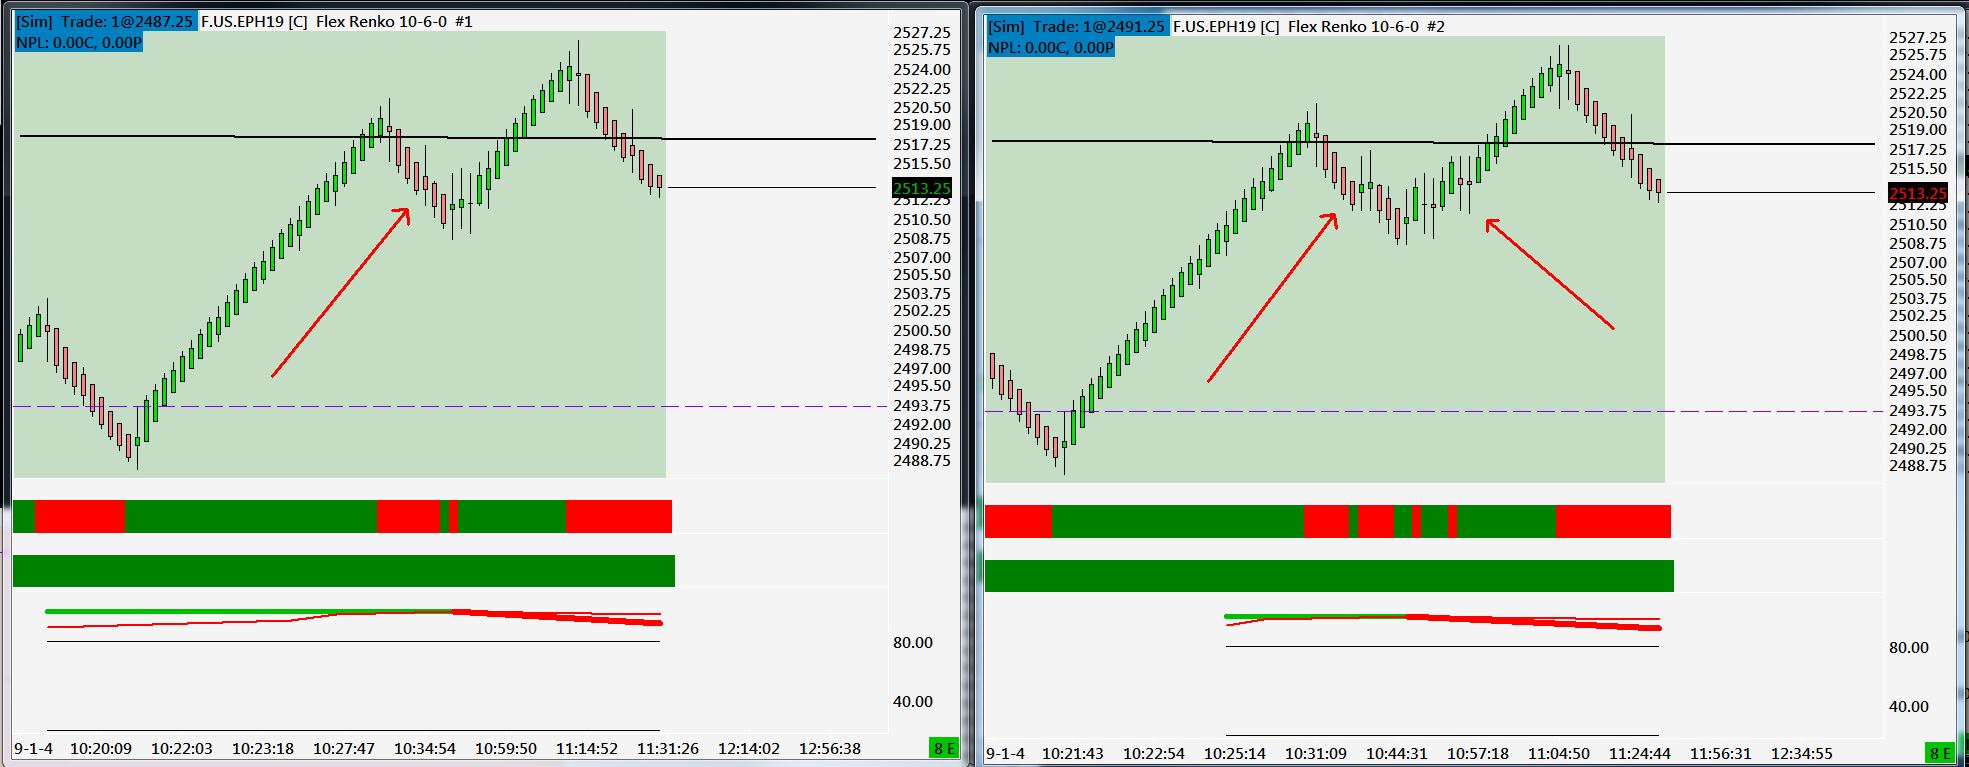 Flex Renko 50-28-0 / Renko Chart Study @ Box 5 - Support